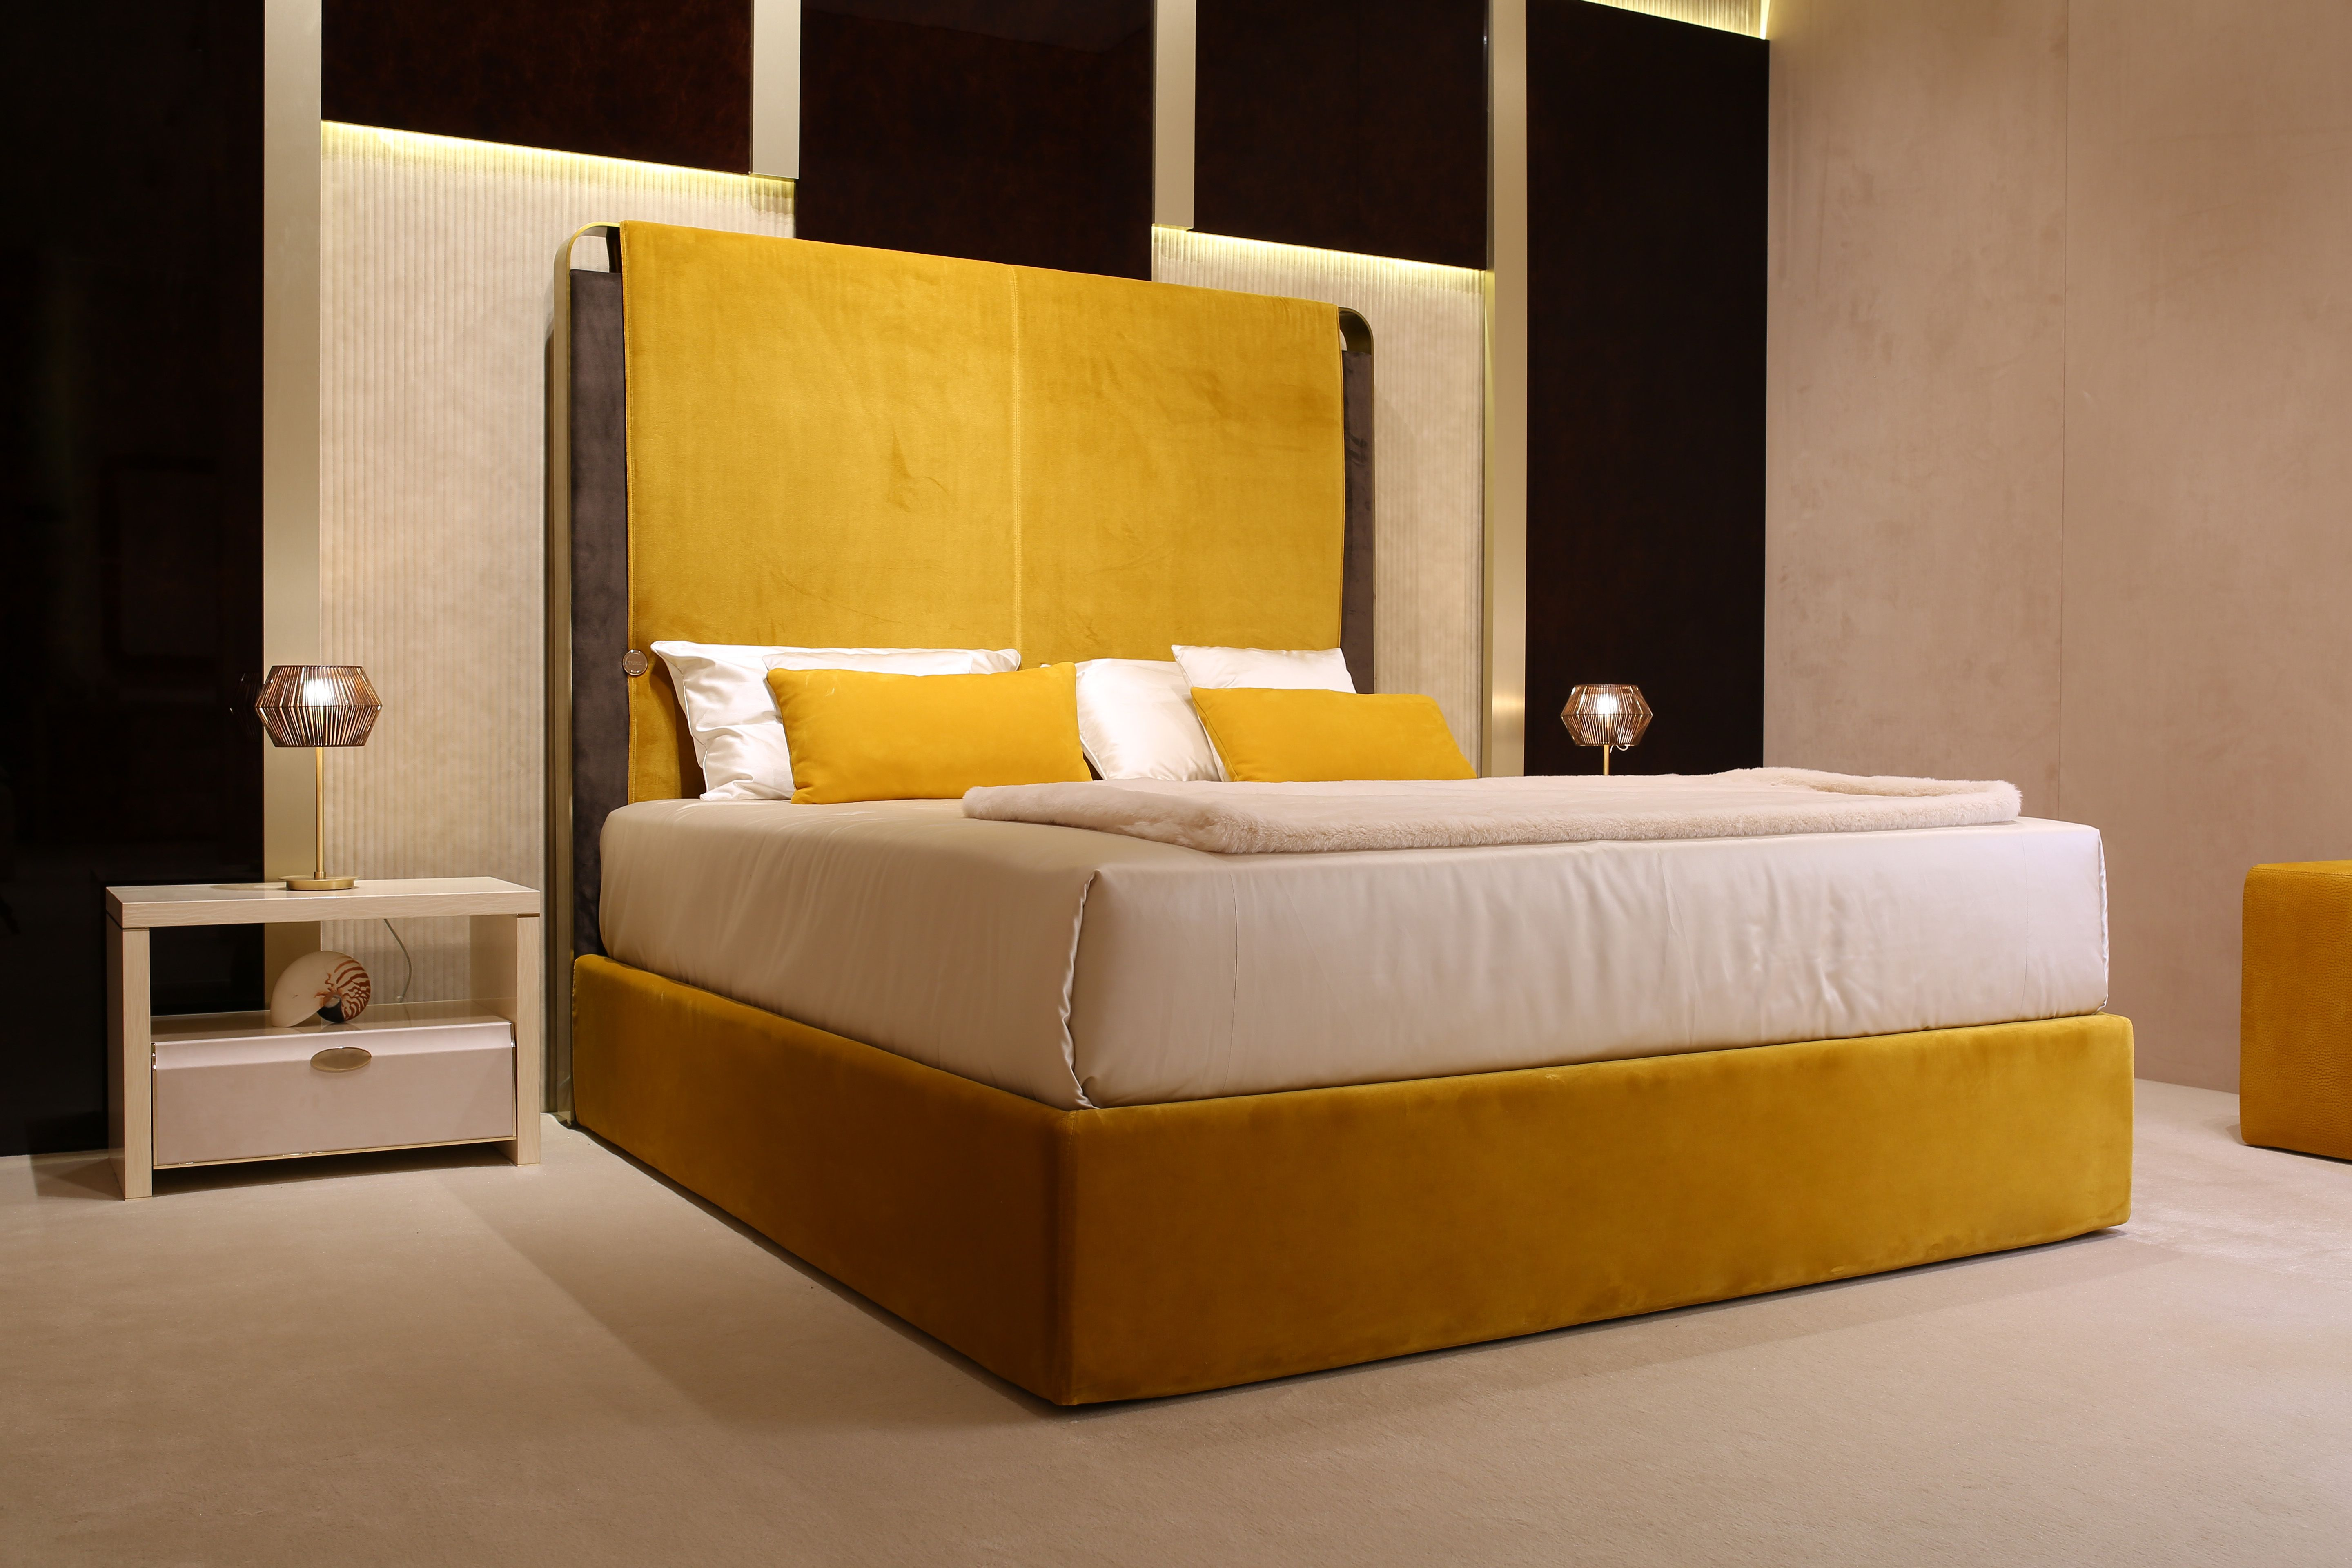 Plaza Bed Italian luxury junior bed luxury